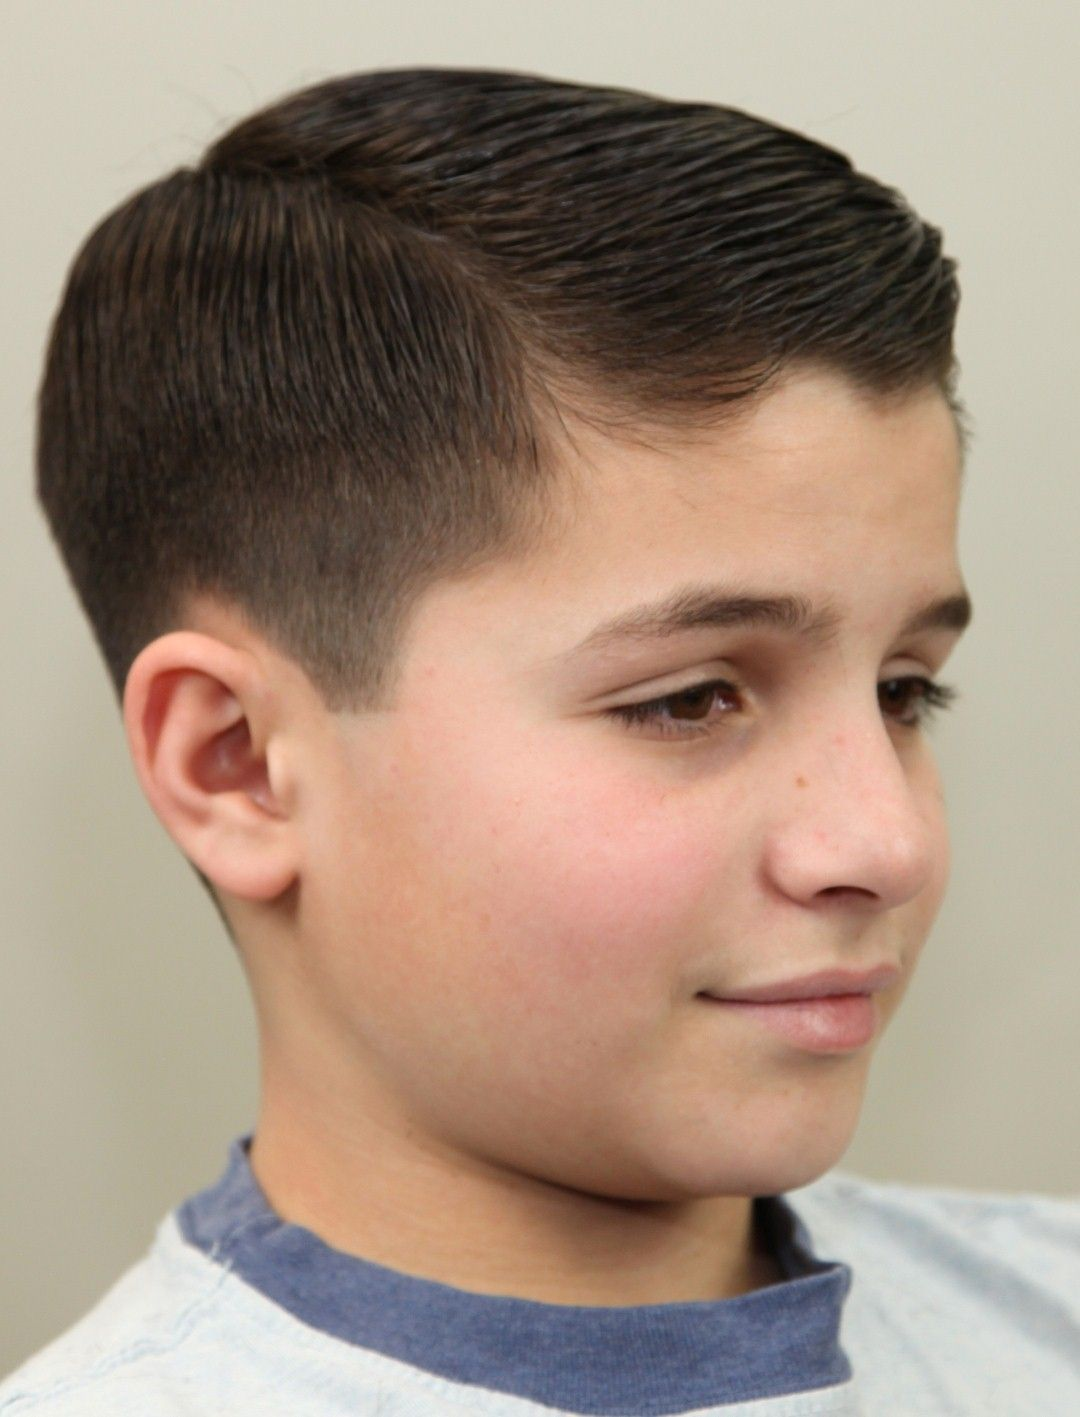 Brilliant 1000 Images About Boy Haircuts On Pinterest Boys Combover And Hairstyles For Men Maxibearus